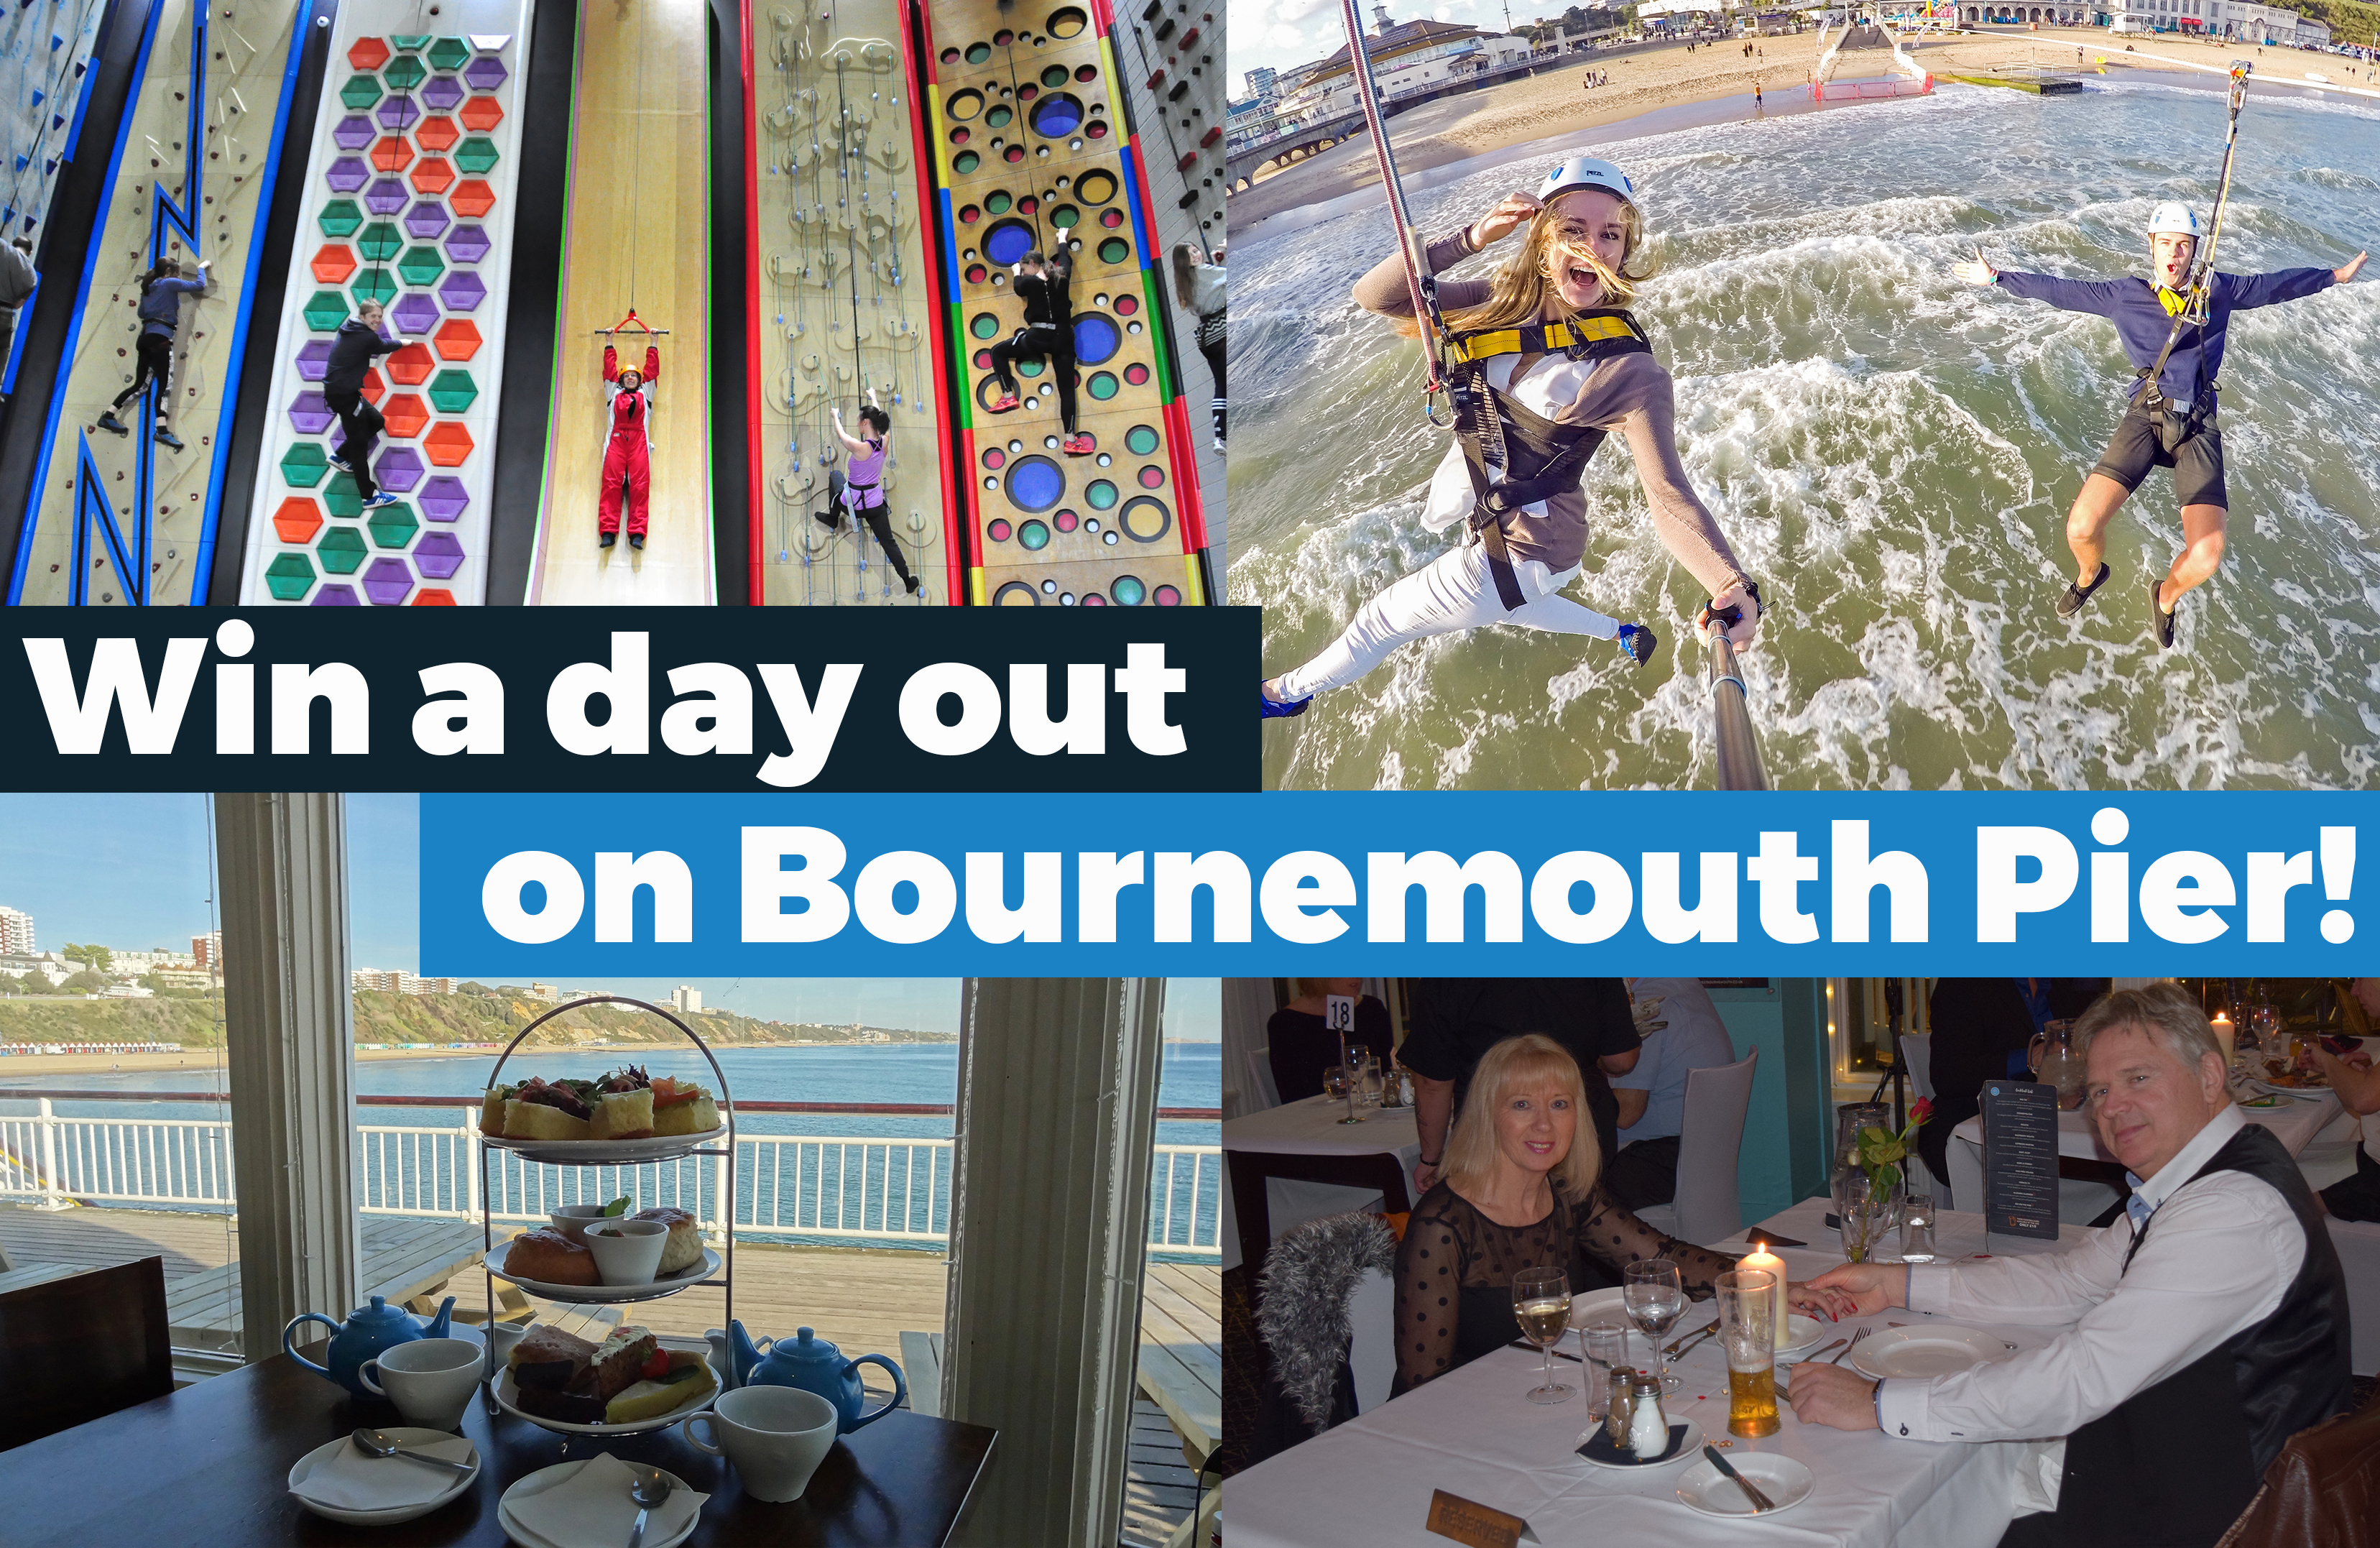 Win A Day Out On Bournemouth Pier!